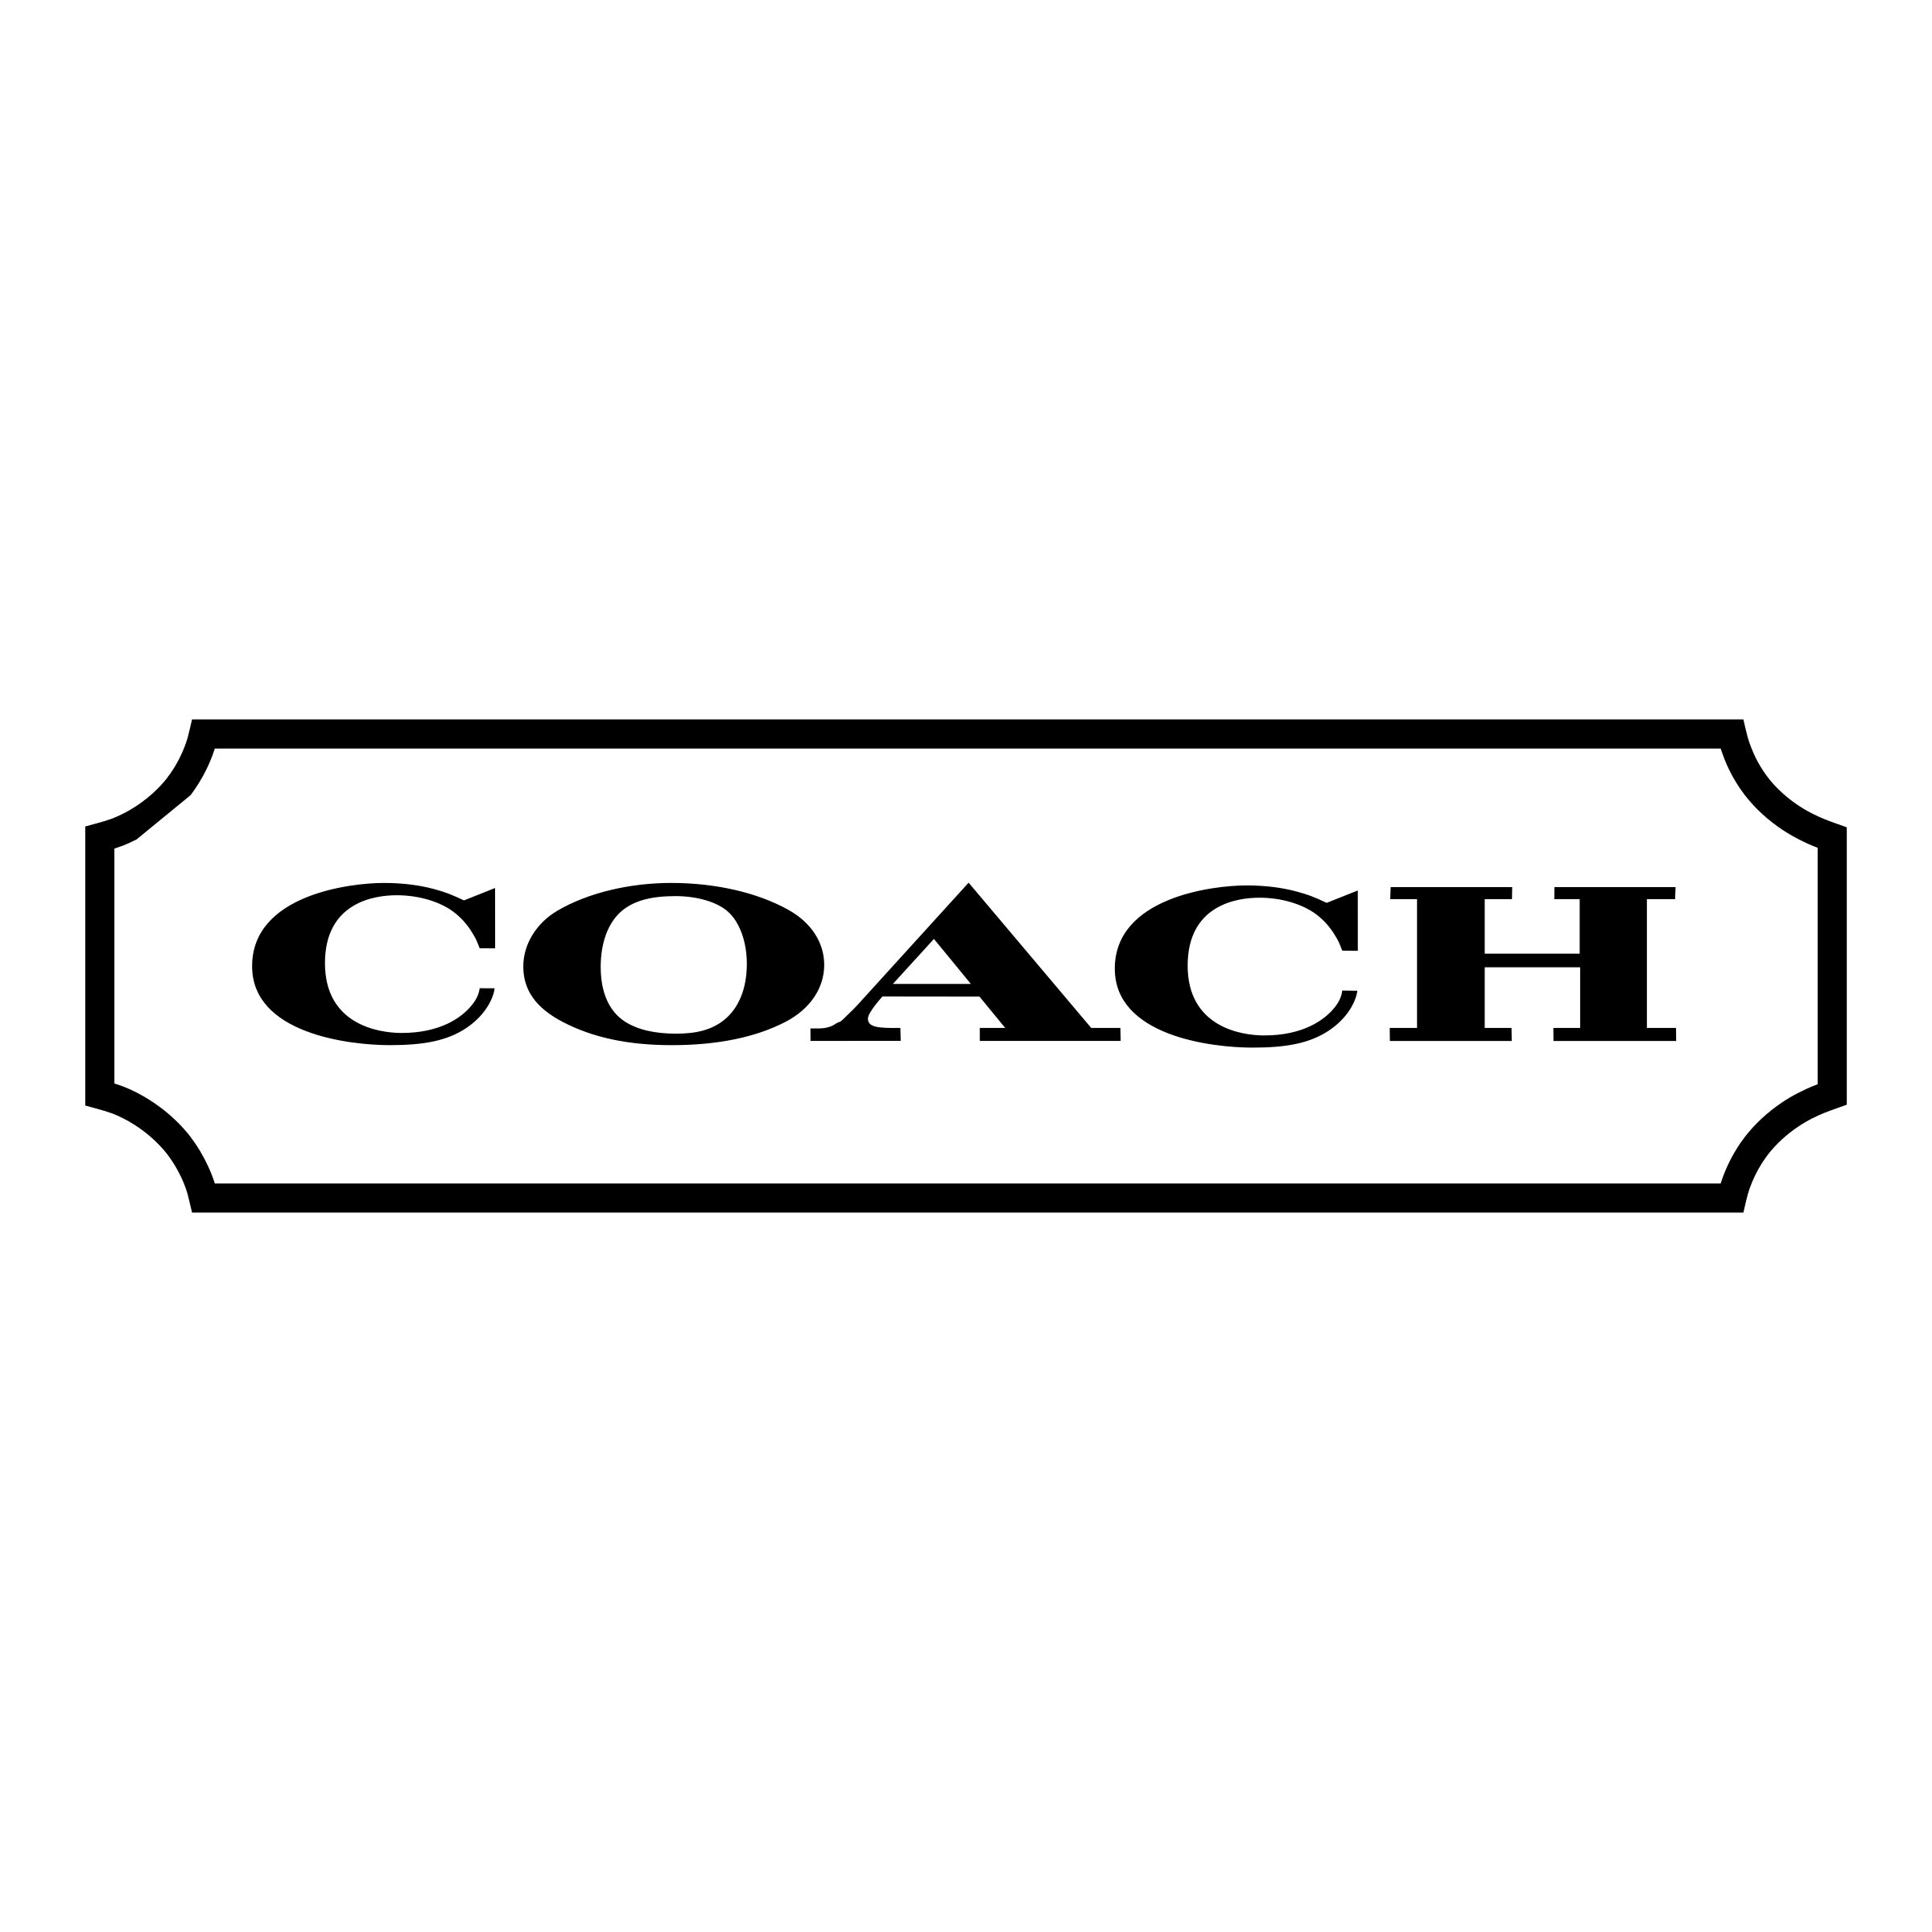 coach-logo-png-transparent.png